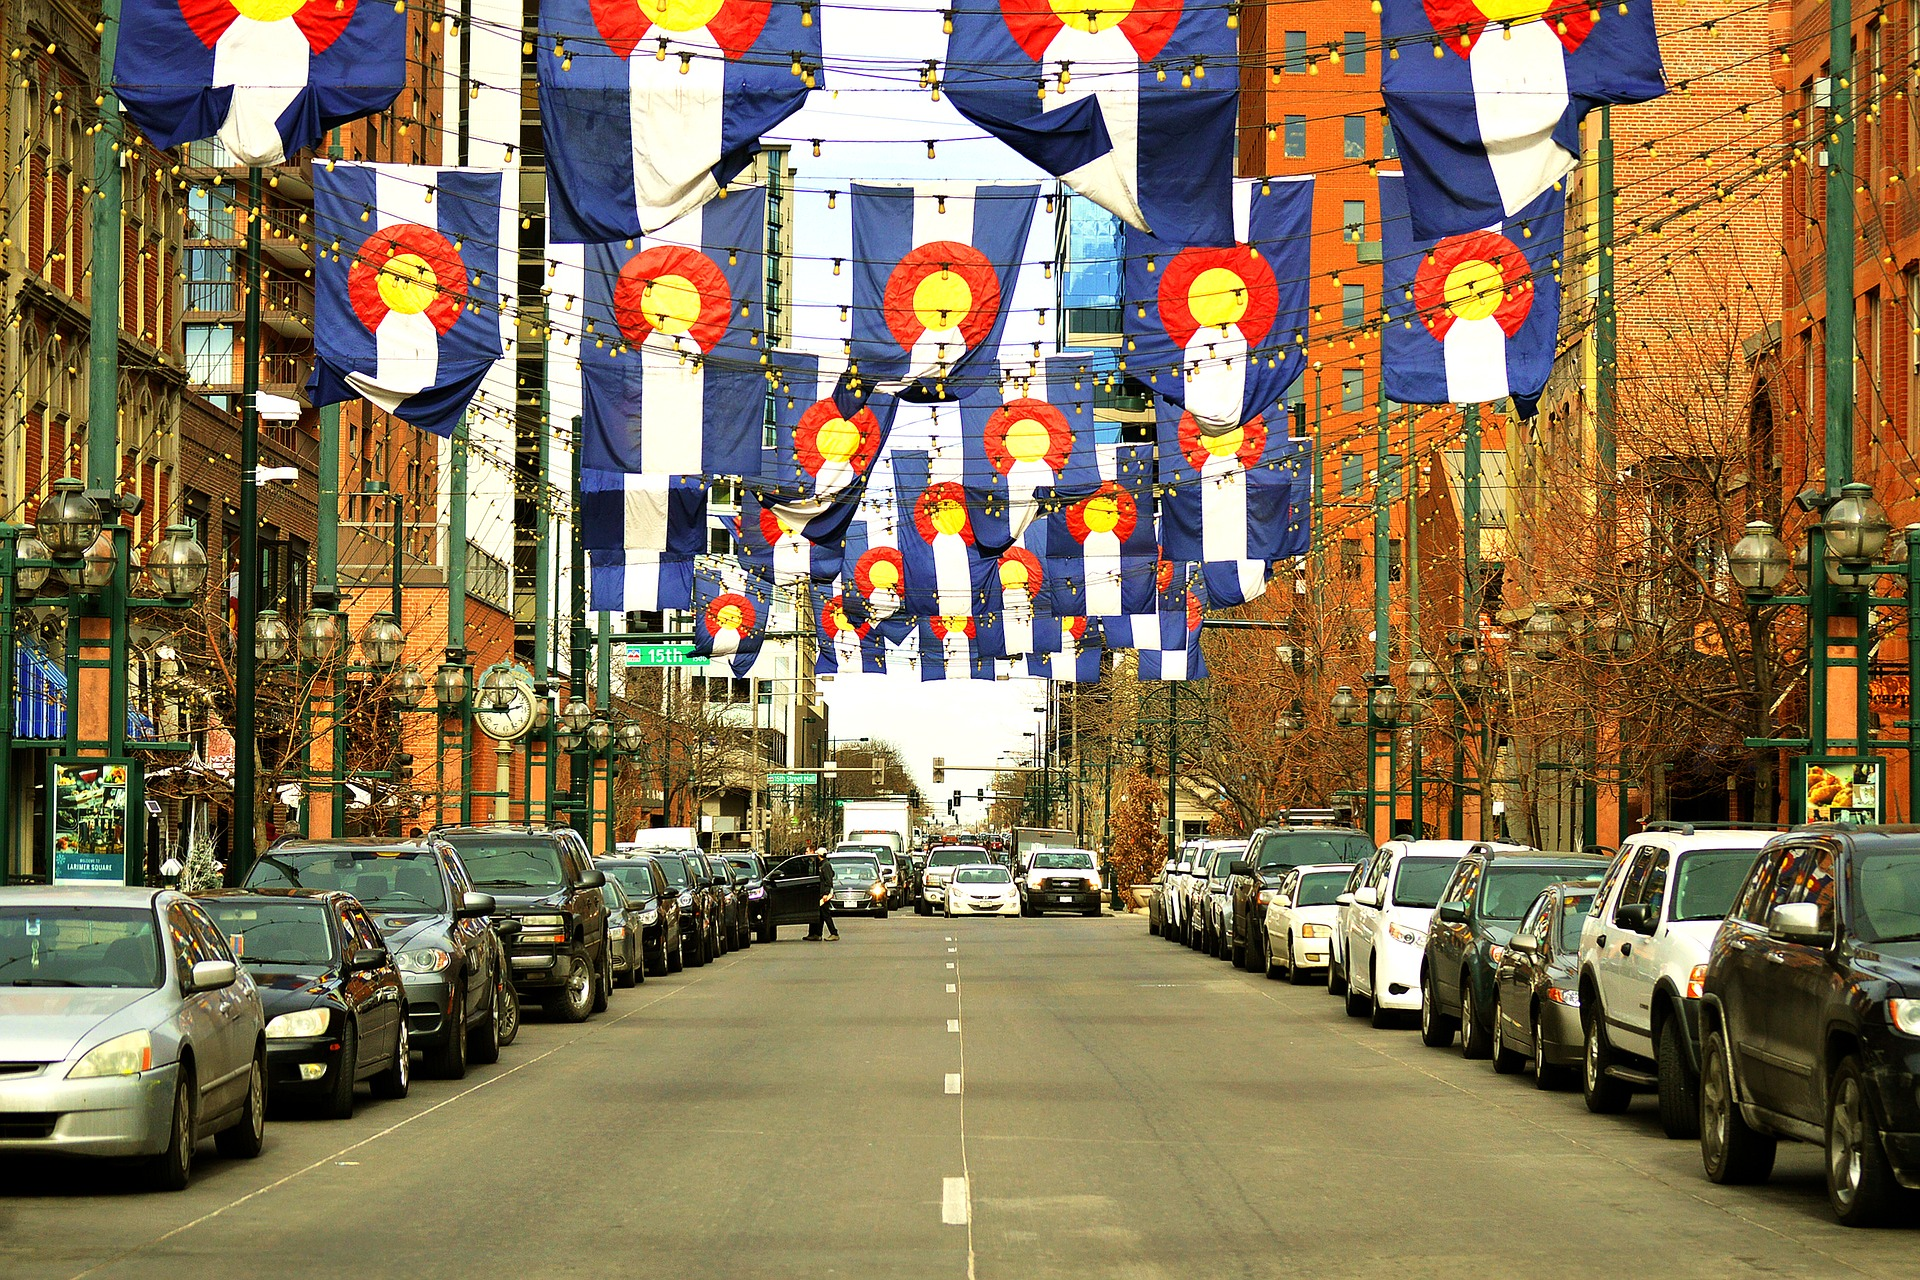 picture of autumn activities in denver on larimer street